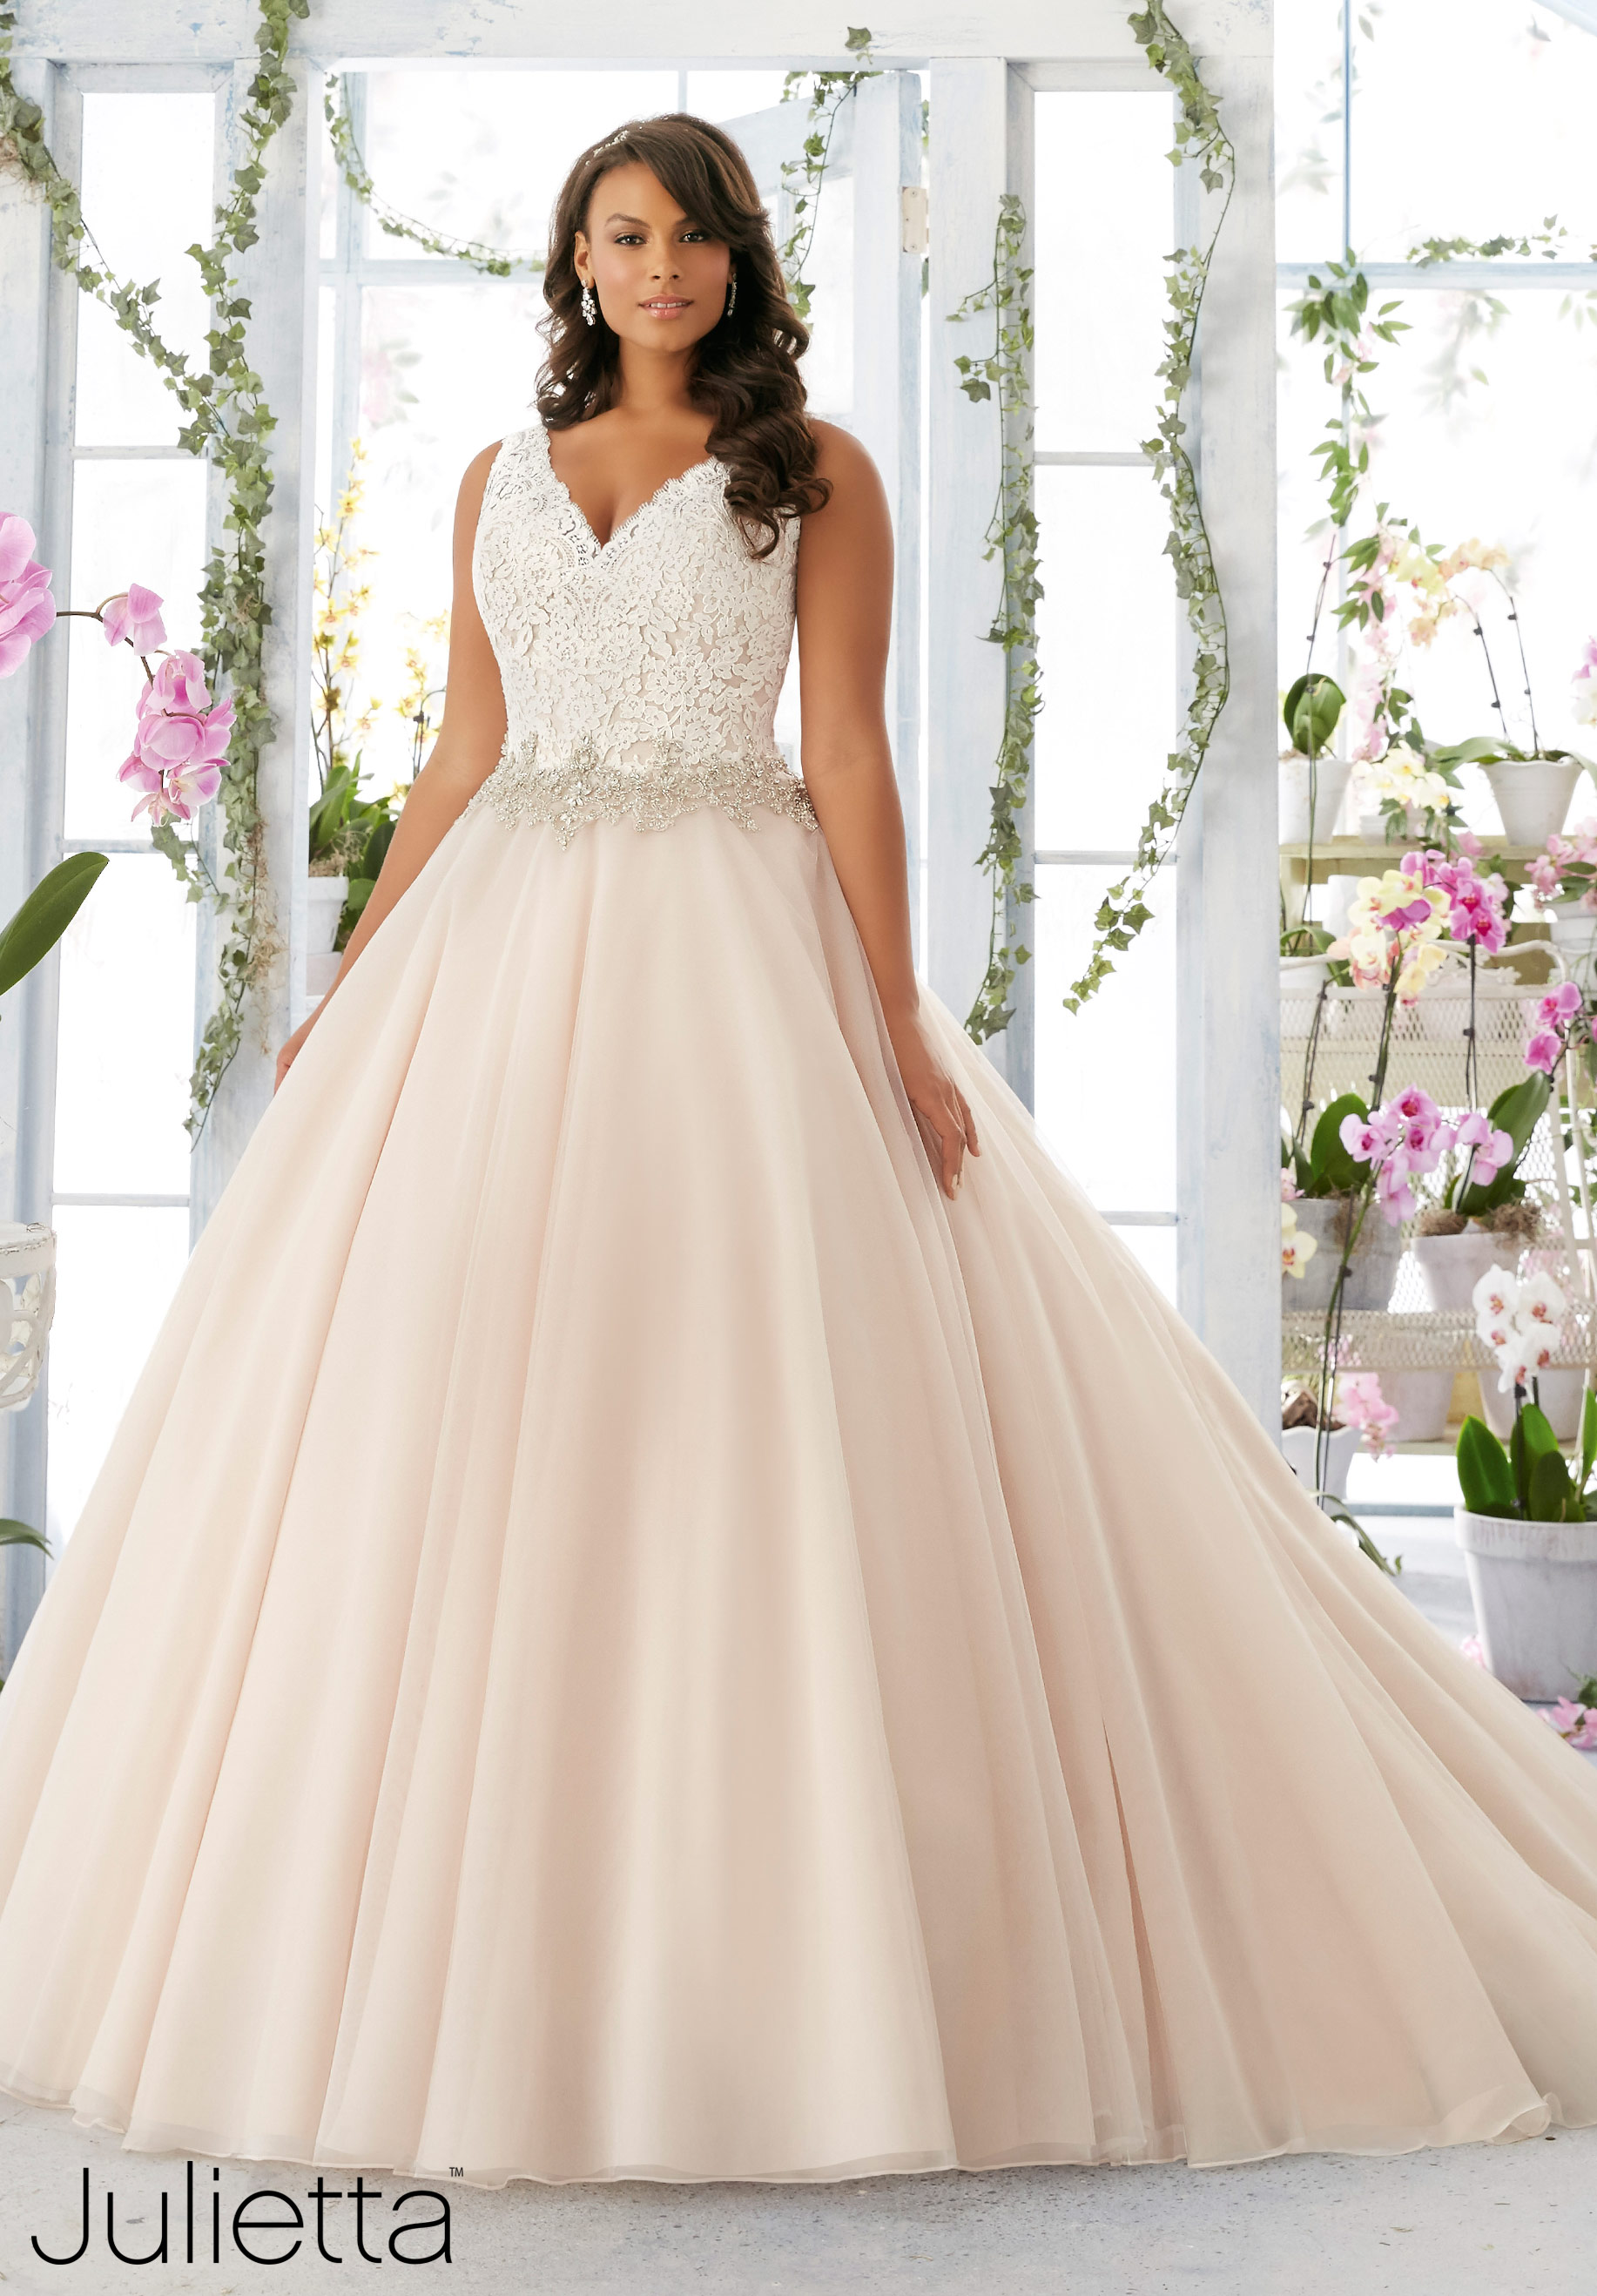 plus size wedding gowns mori lee julietta collection plus sized wedding dresses plus size bridal gowns